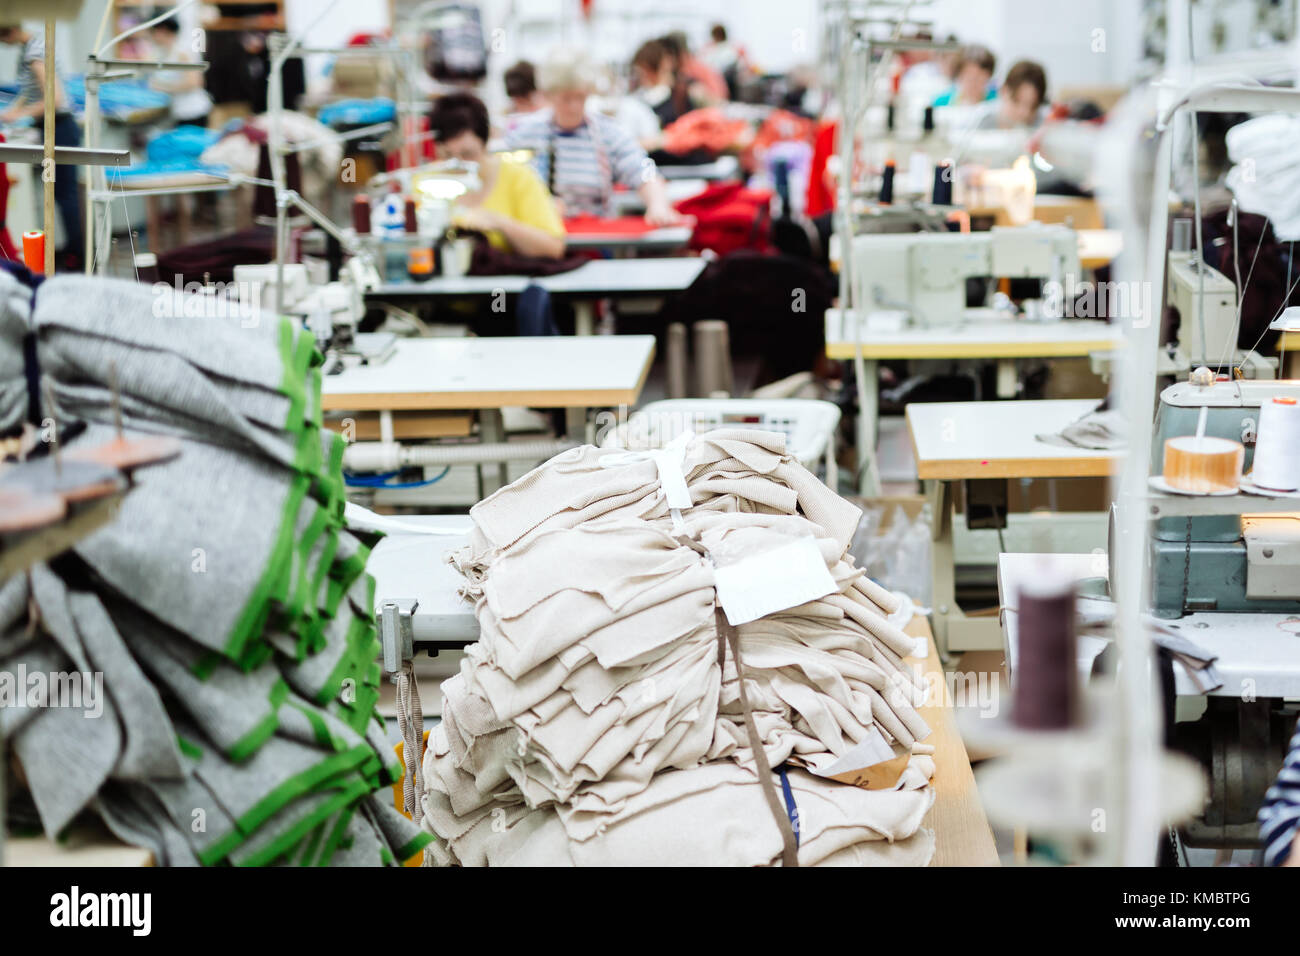 Sewing industry manufacturing - Stock Image